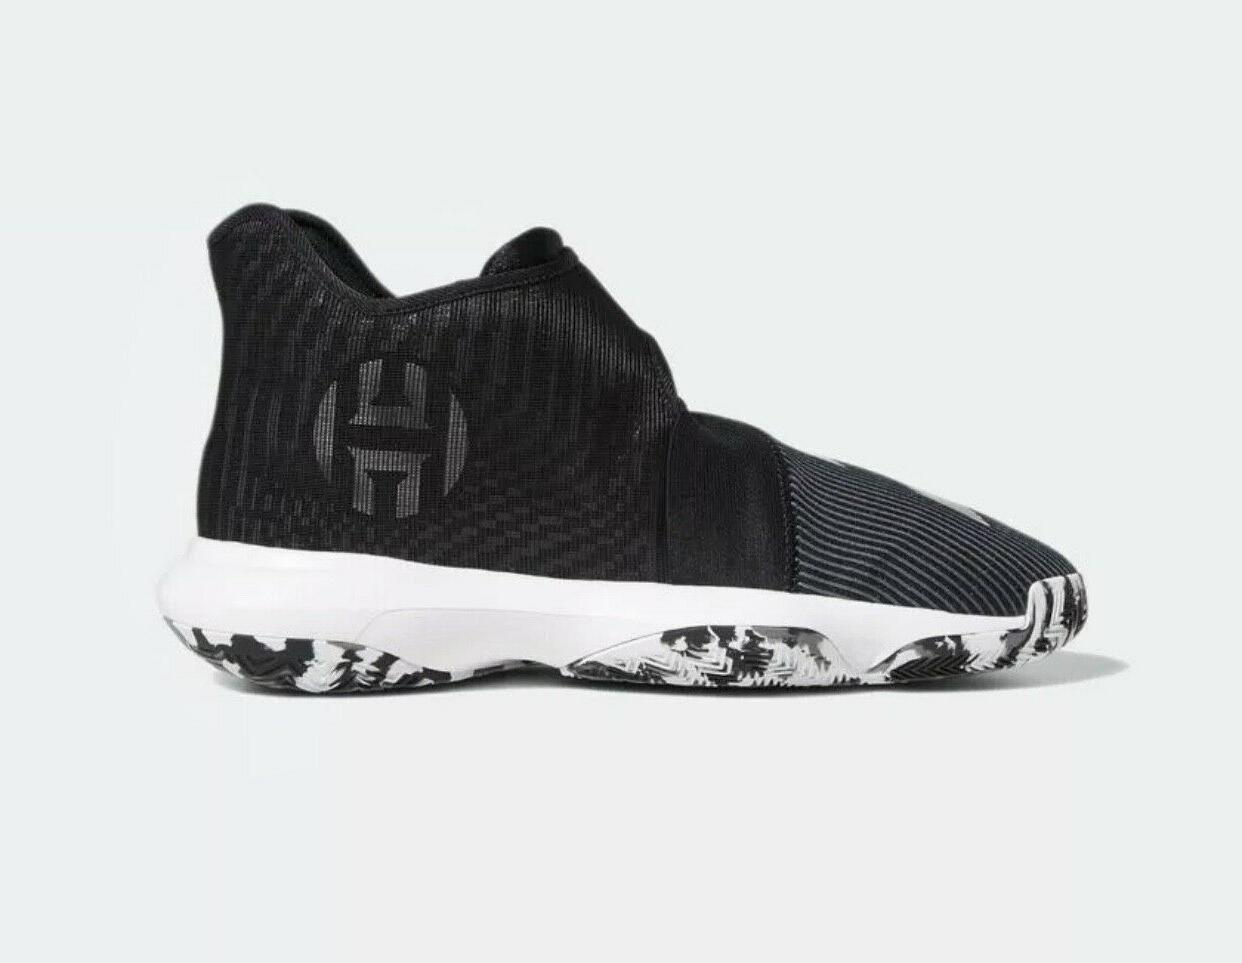 New Boys Harden Shoes EF3604